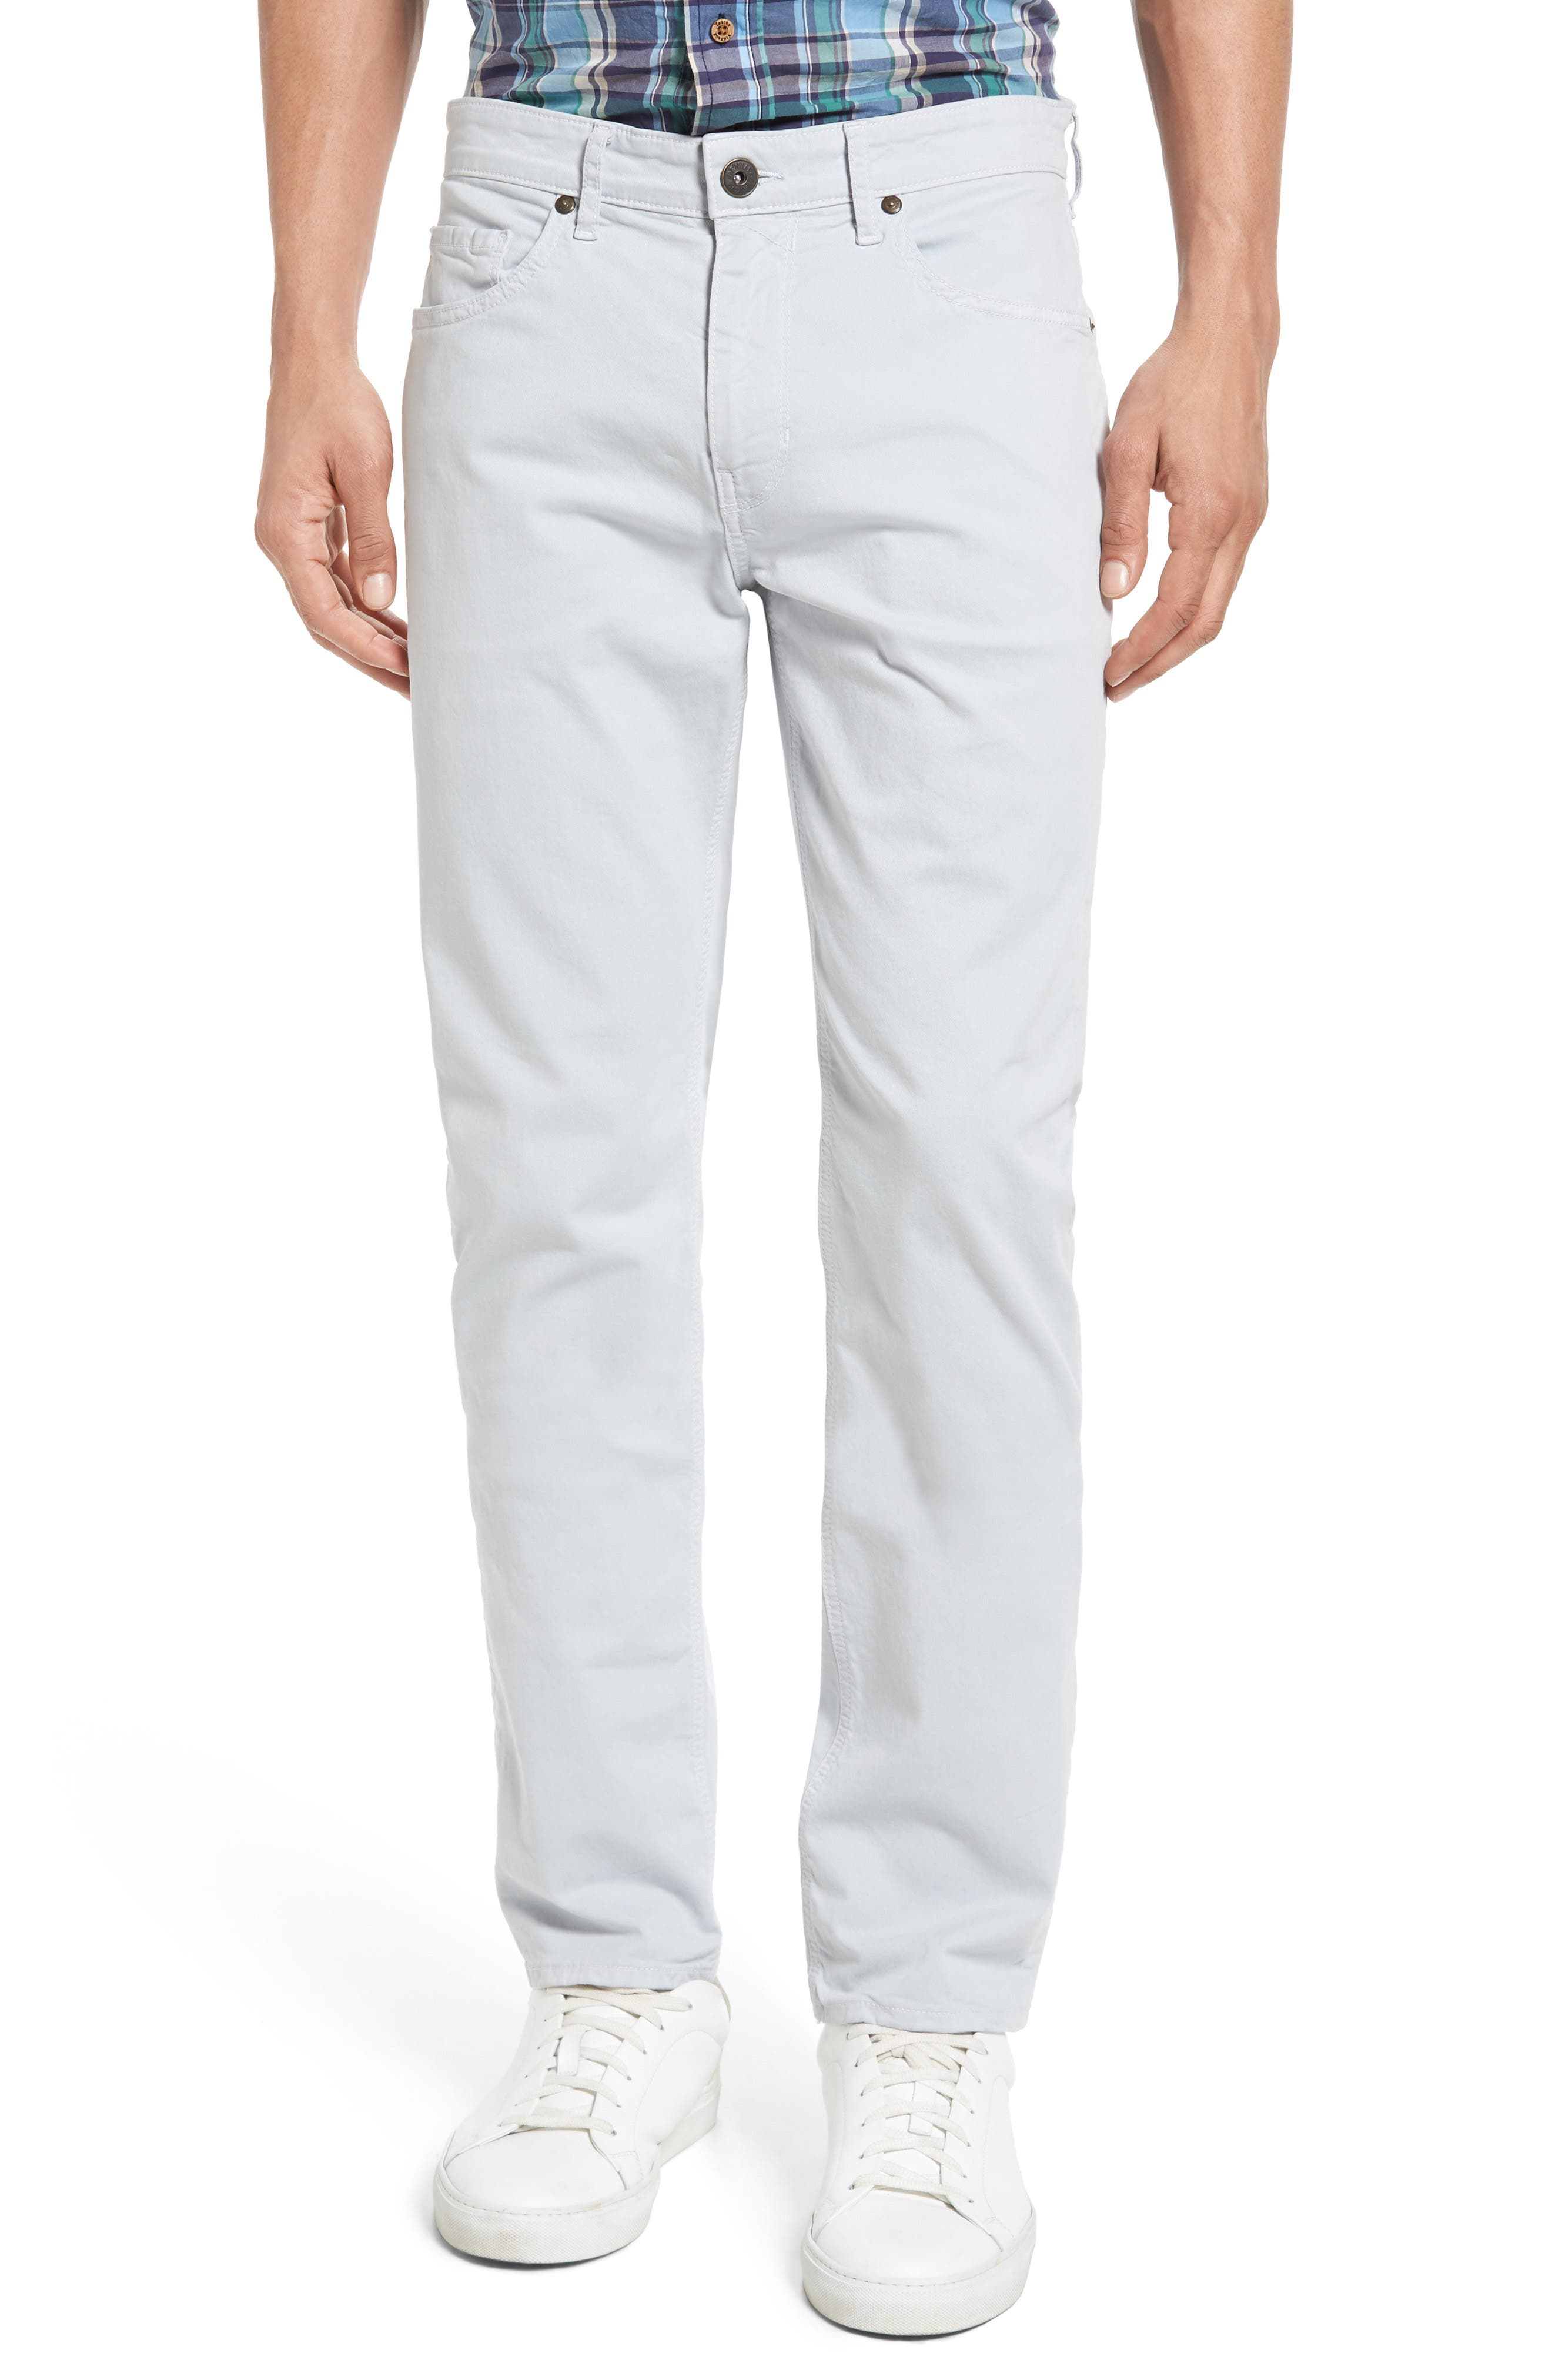 Lennox Skinny Fit Jeans,                         Main,                         color, 400